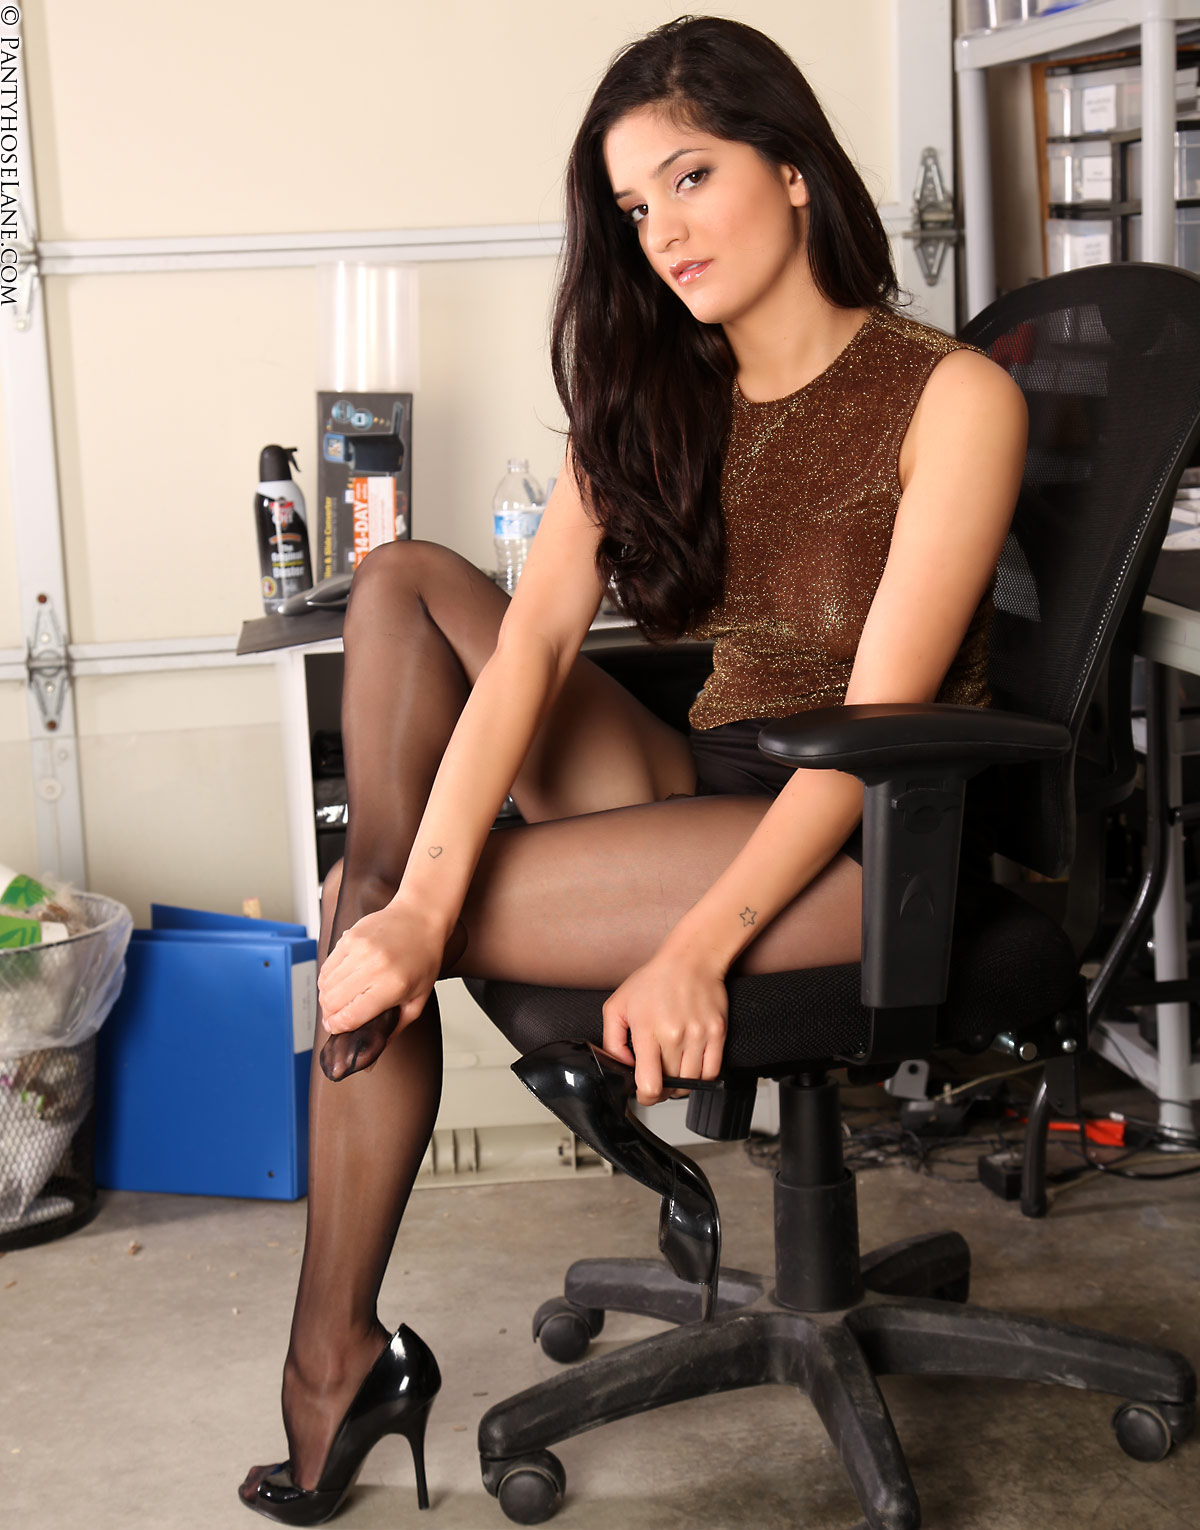 This. Chick. Staisja pantyhose lane